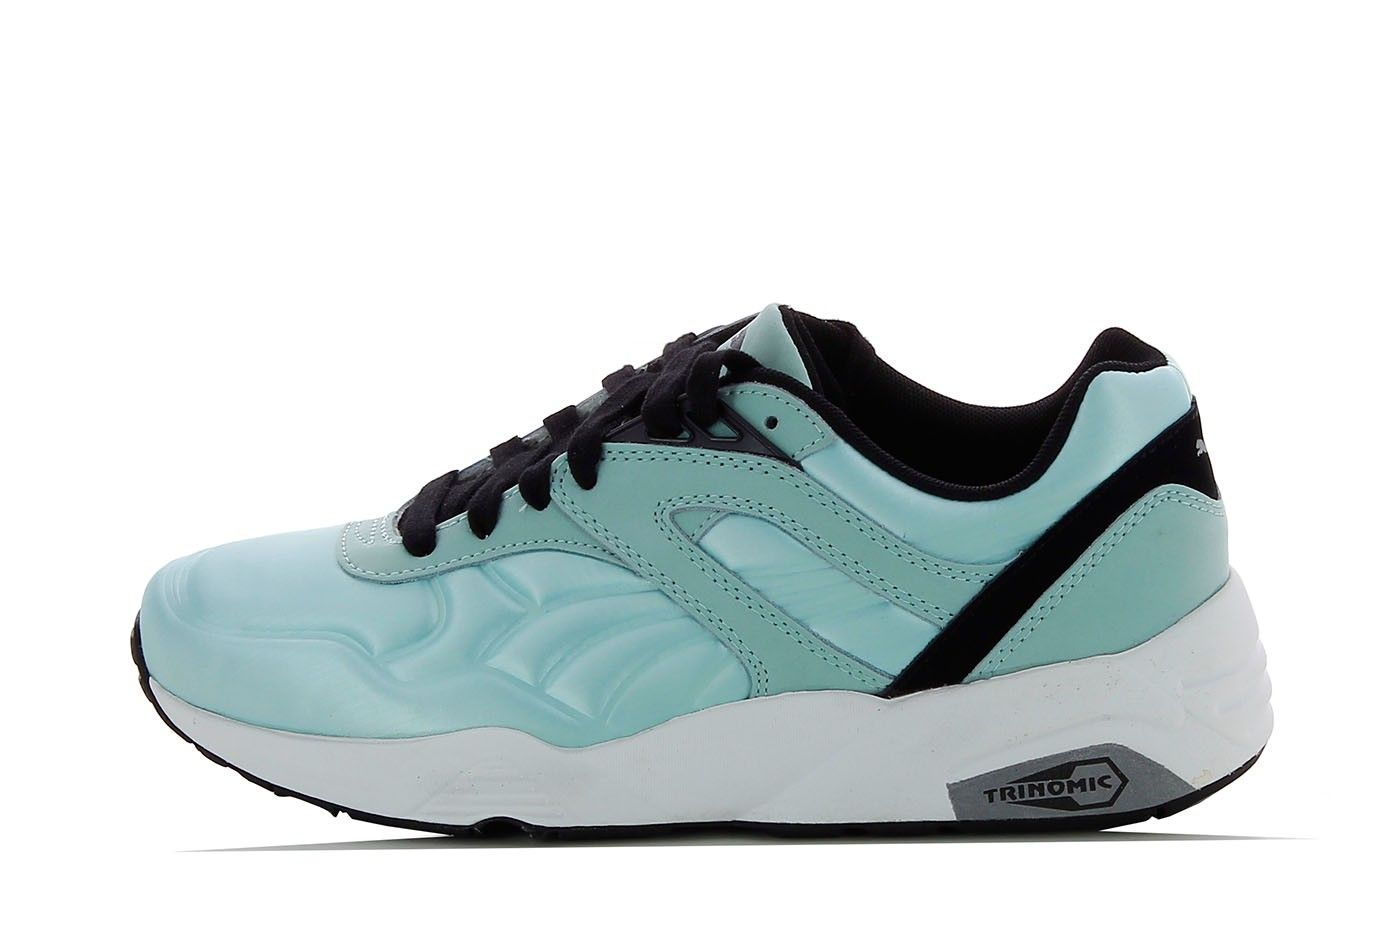 wholesale dealer 2f15a 9f3d7 Basket Puma Trinomic R698 Matt and Shine - 359305-05